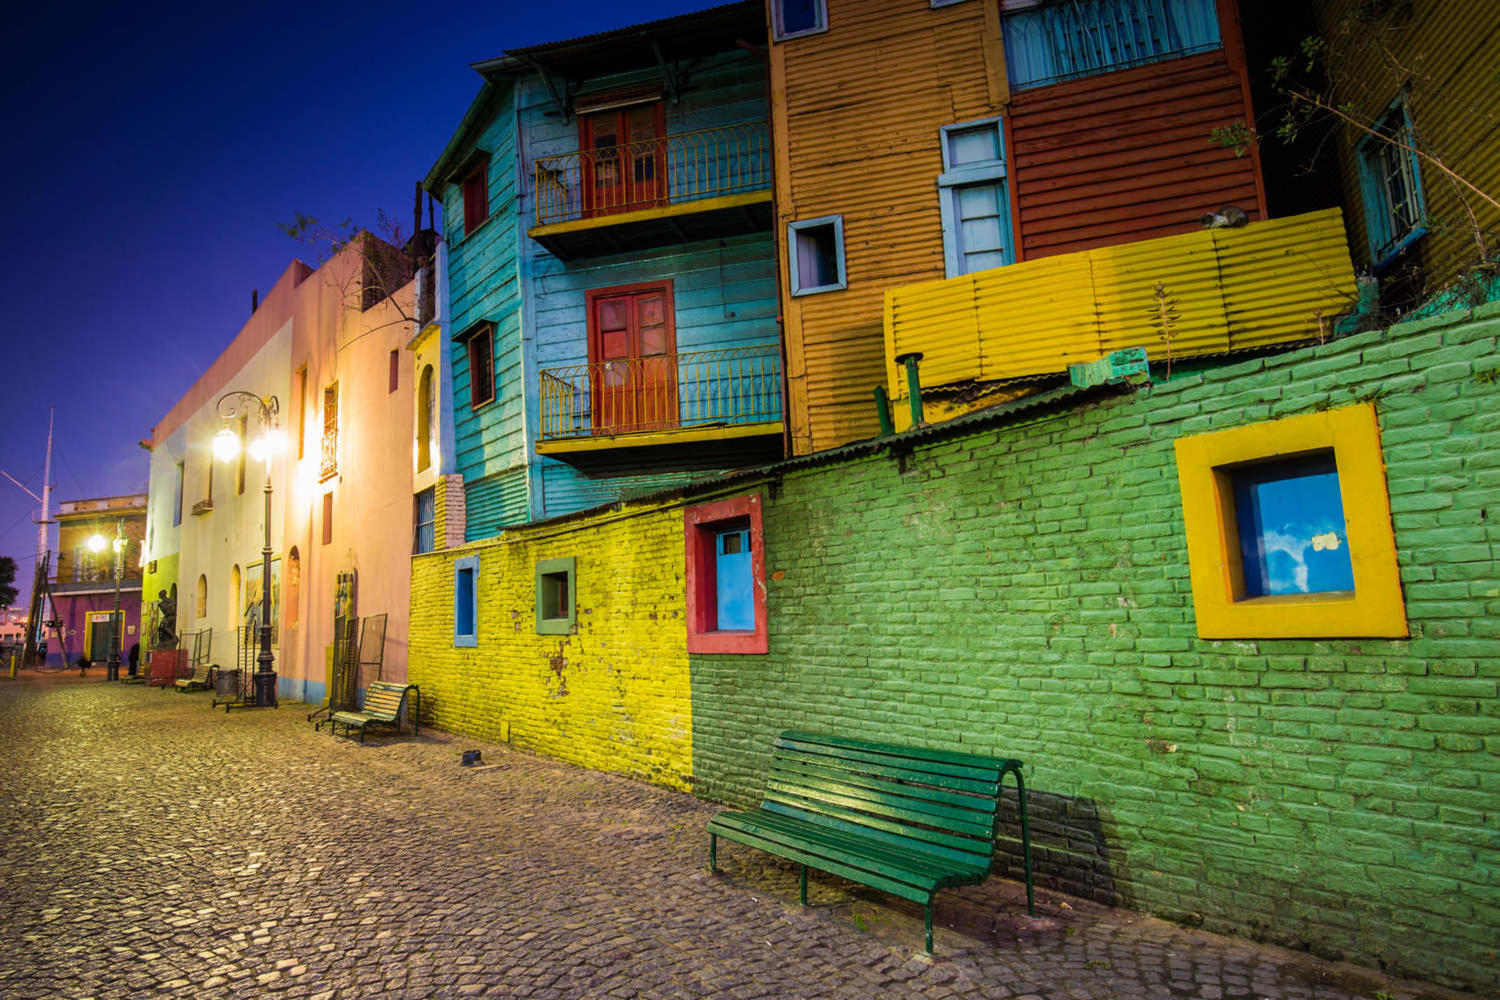 Caminito street in La Boca neighborhood